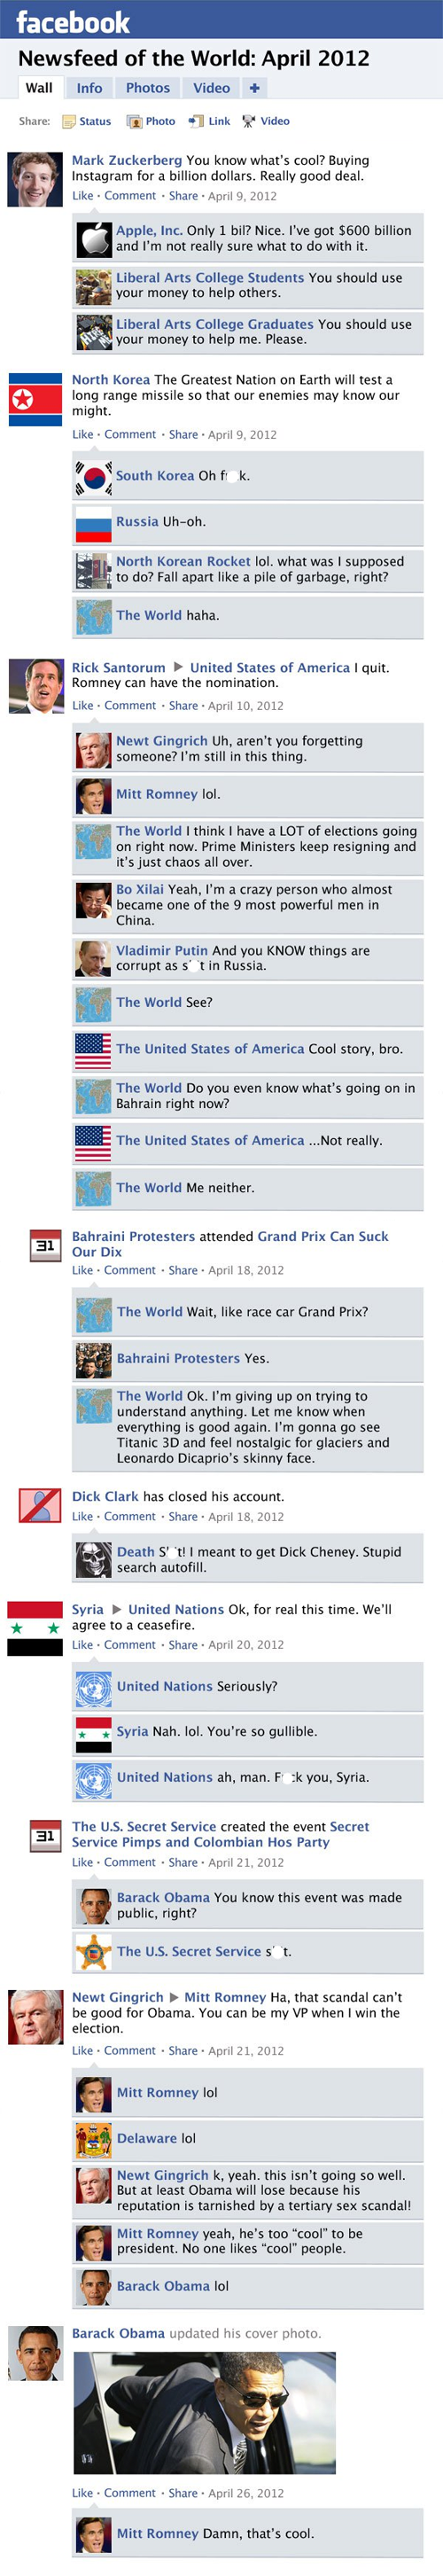 Newsfeed of the World: April 2012